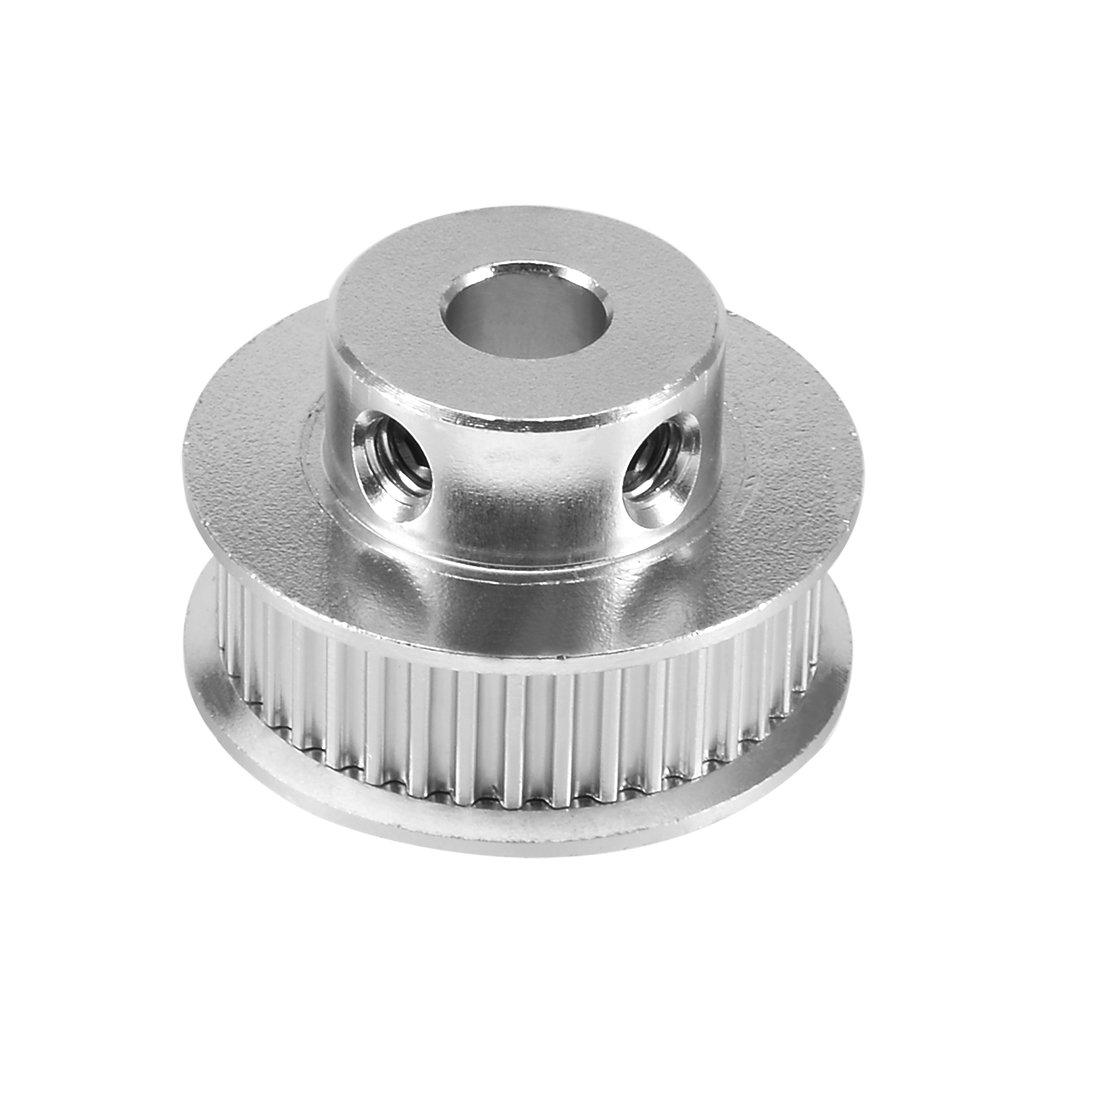 uxcell Aluminum GT2 40 Teeth 5mm Bore Timing Belt Pulley Flange Synchronous Wheel for 3D Printer